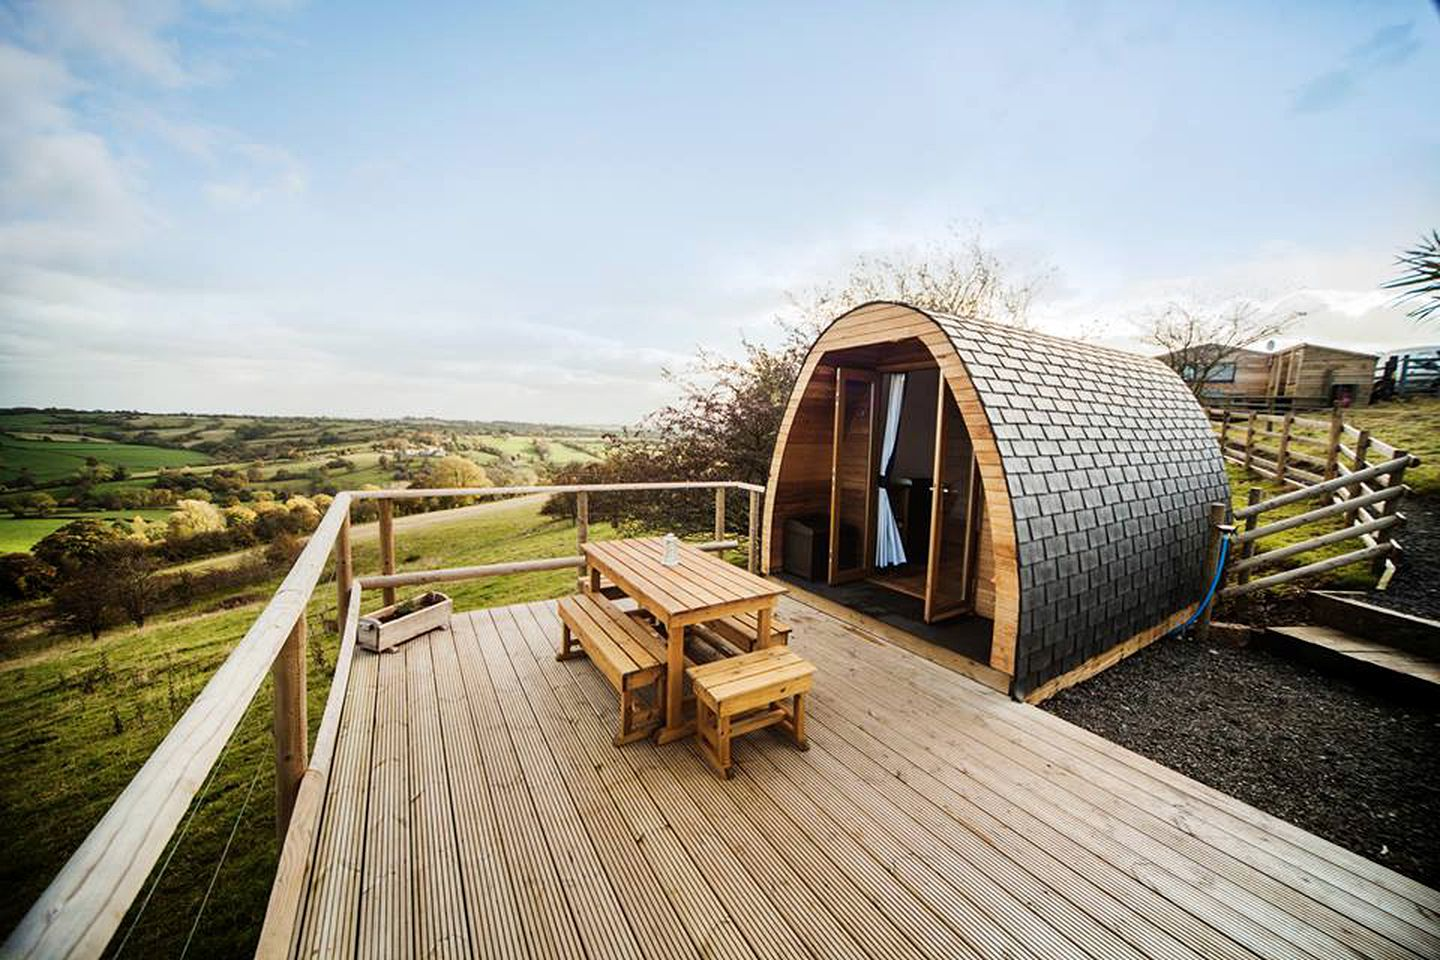 Glamping Derbyshire pods on a sustainable farm in the UK.